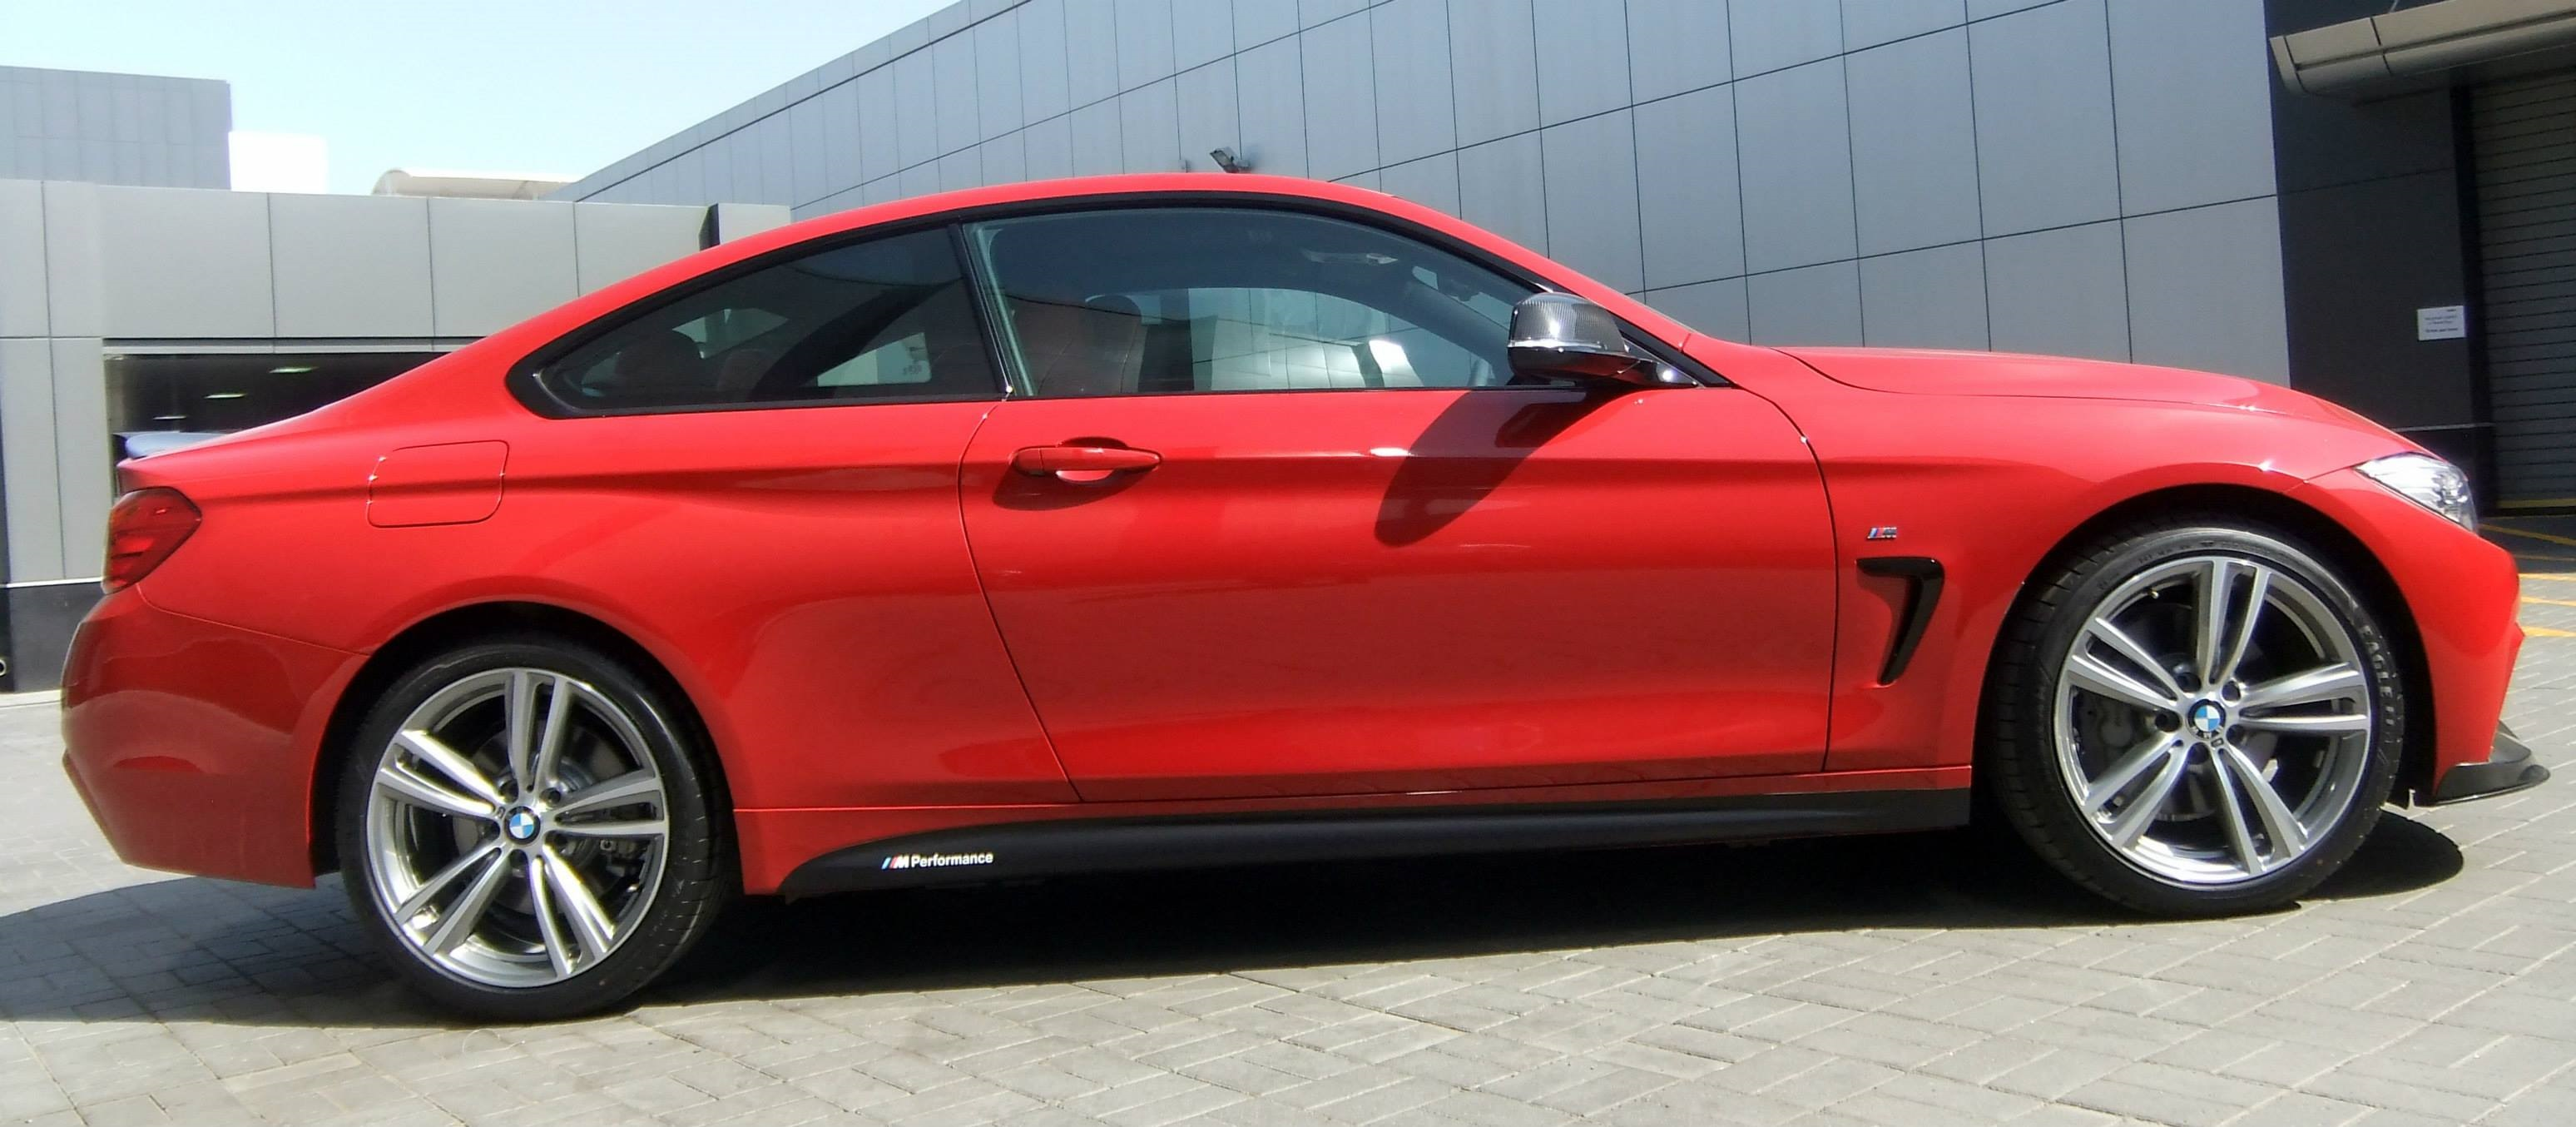 Bmw Er F Tuning M Performance Zubehoer I Coupe Rot